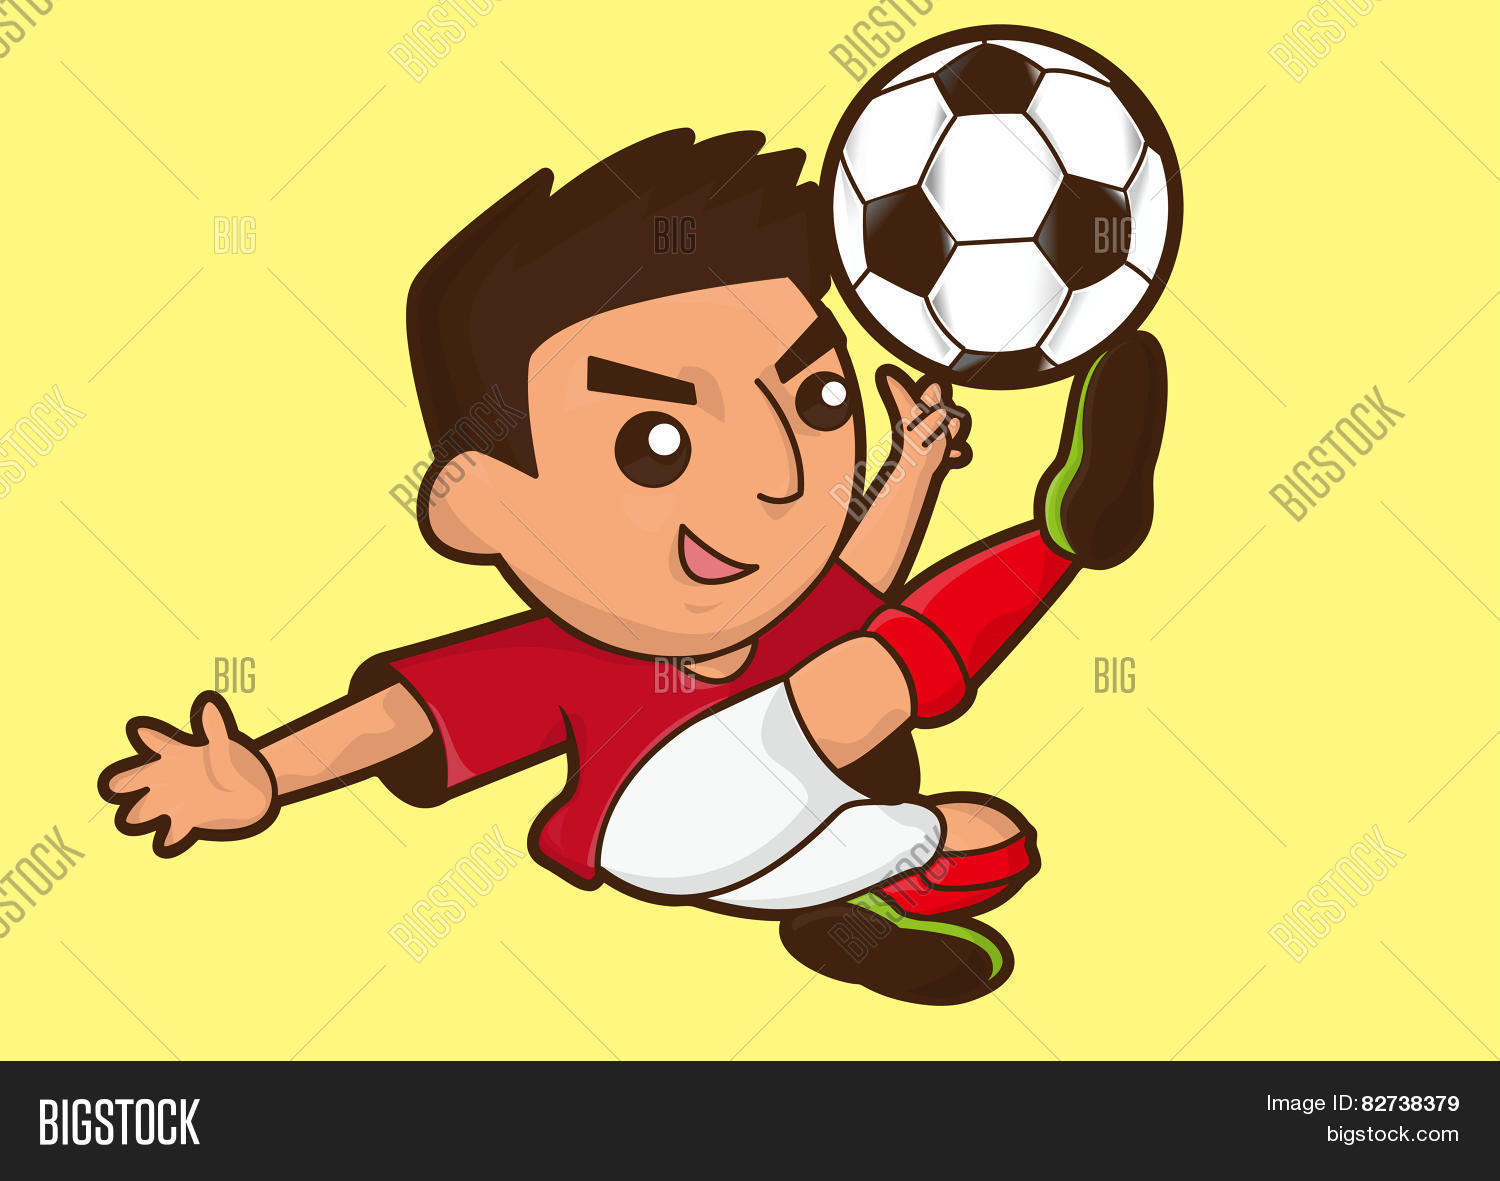 View Soccer Player Cartoon Images Images